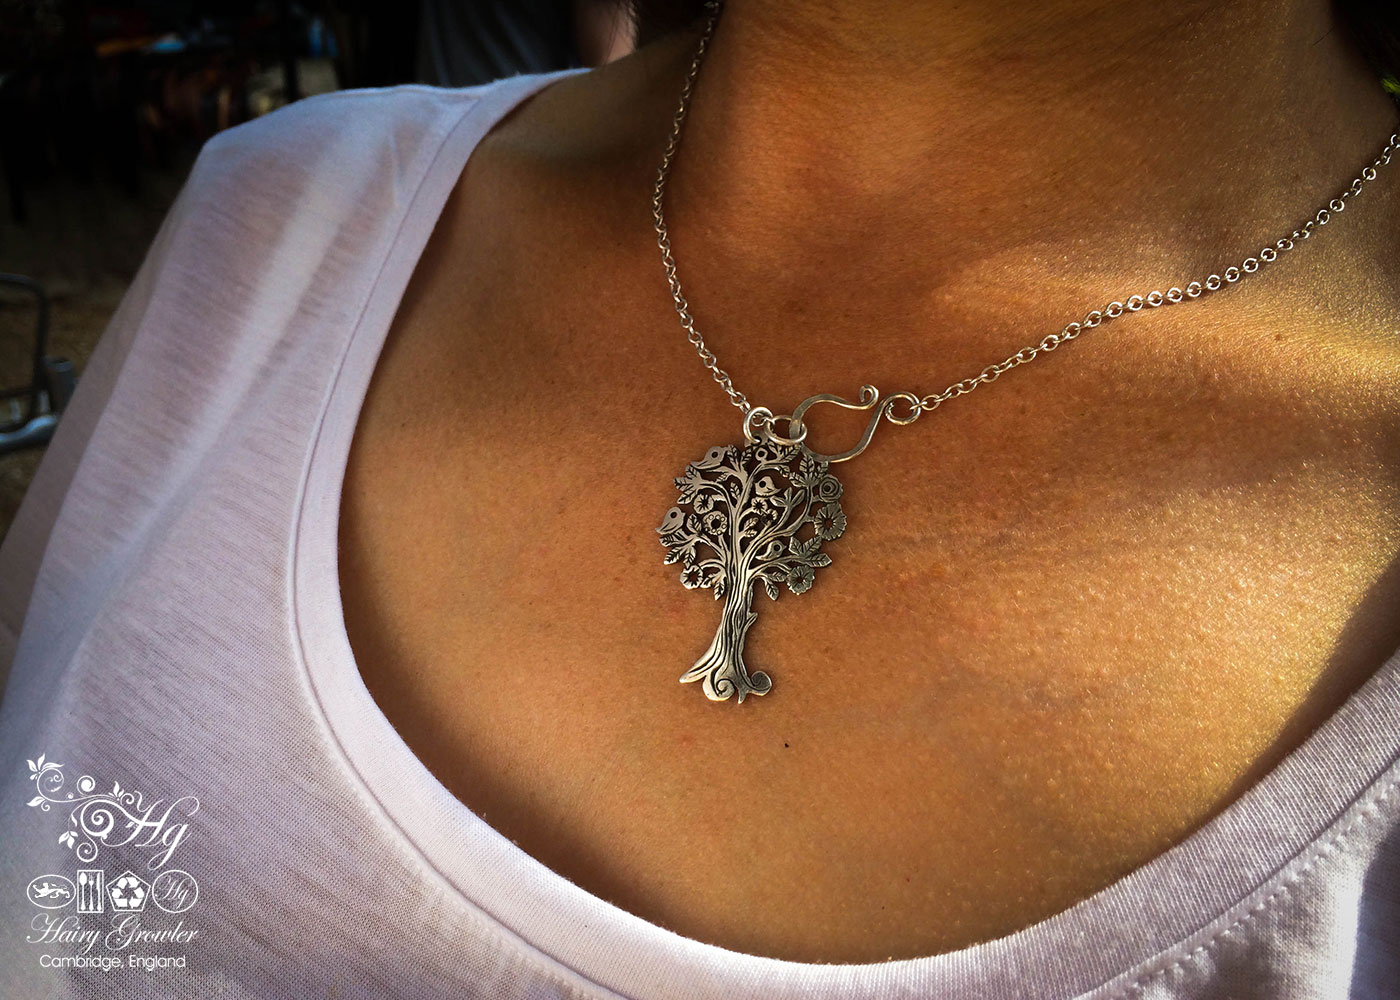 Handmade and repurposed silver Summer tree and tweeting birds made from a silver coin